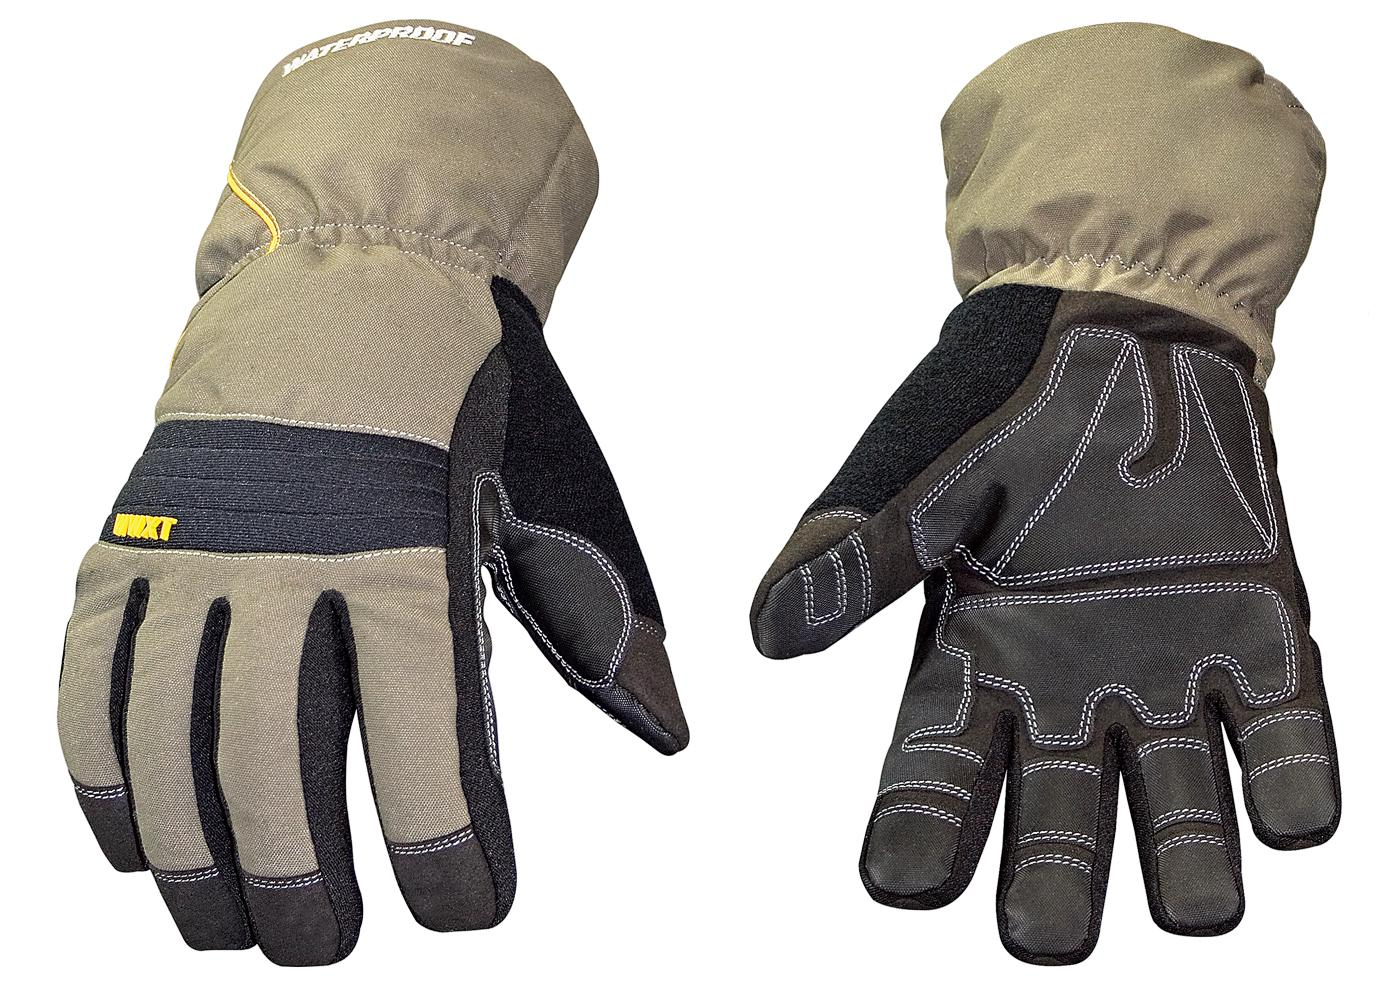 Youngstown Glove 11-3460-60-M Waterproof Winter XT 200